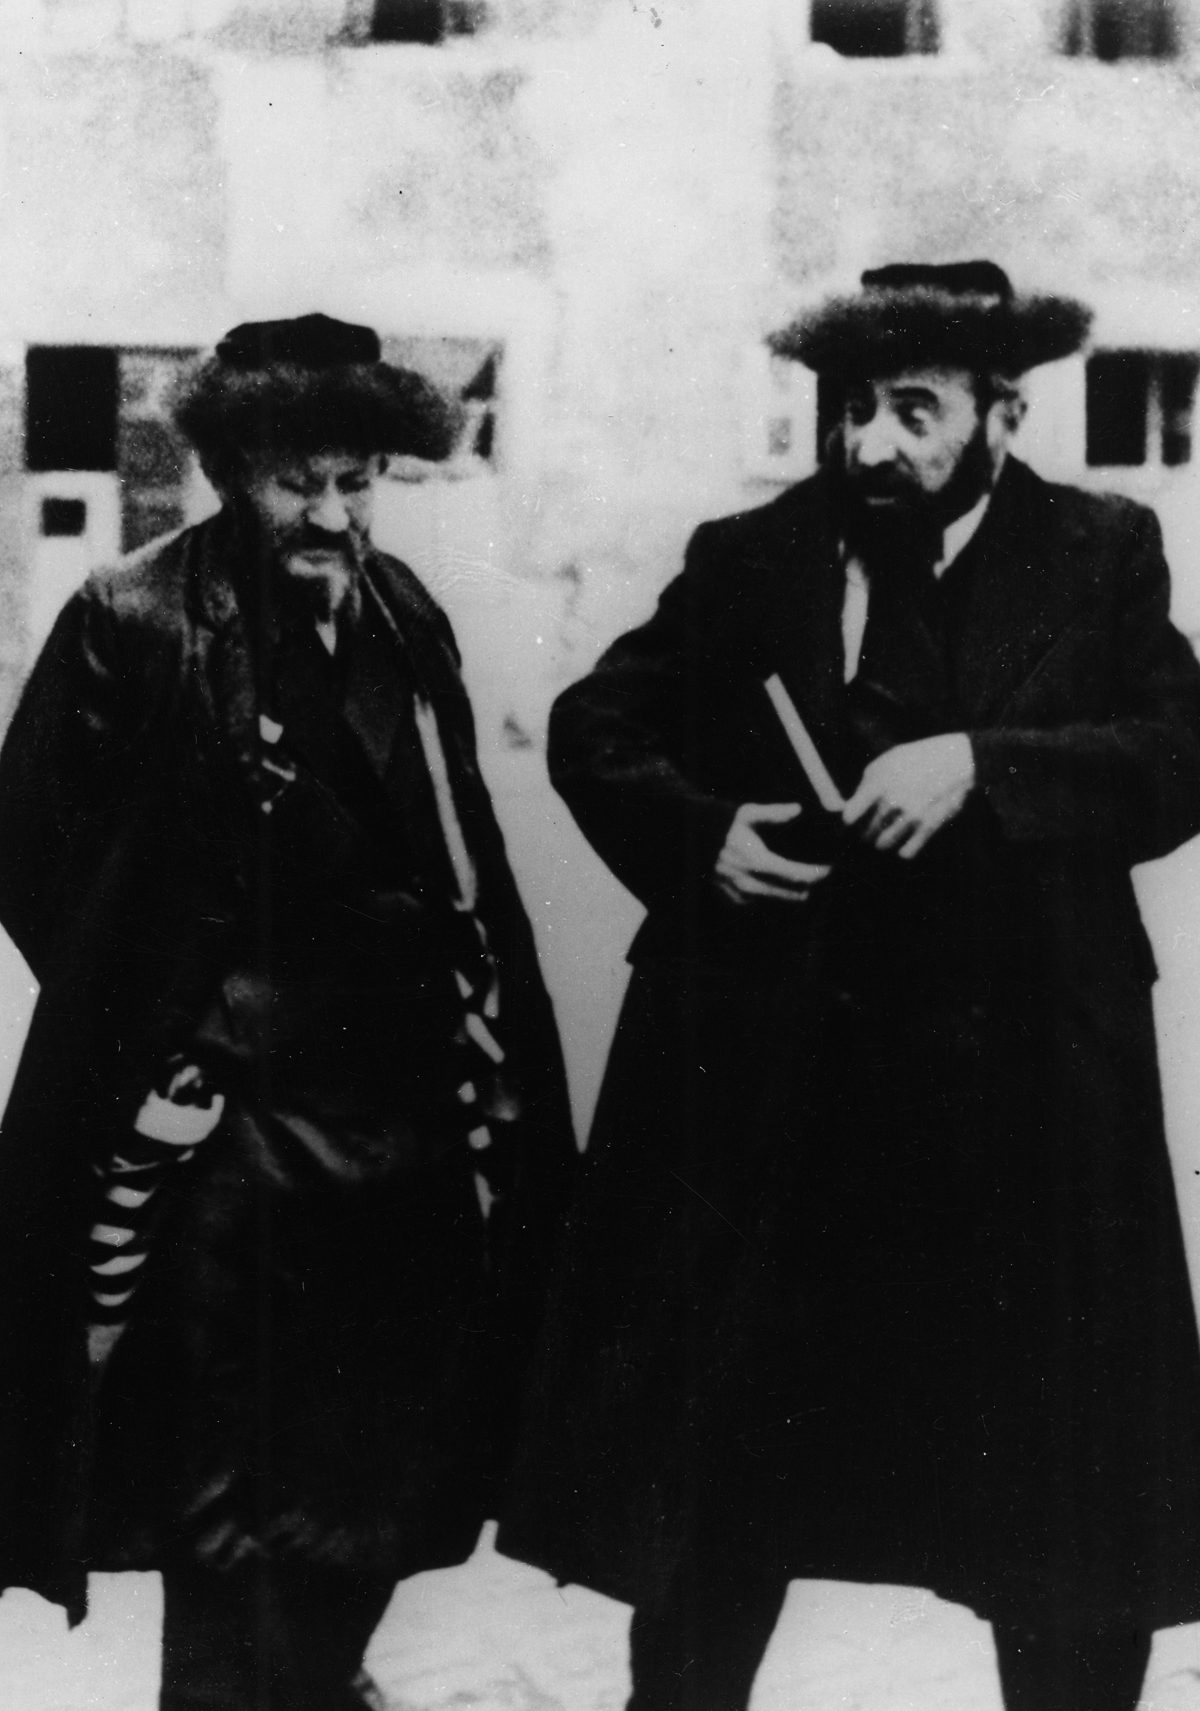 Polish Jews before the Holocaust